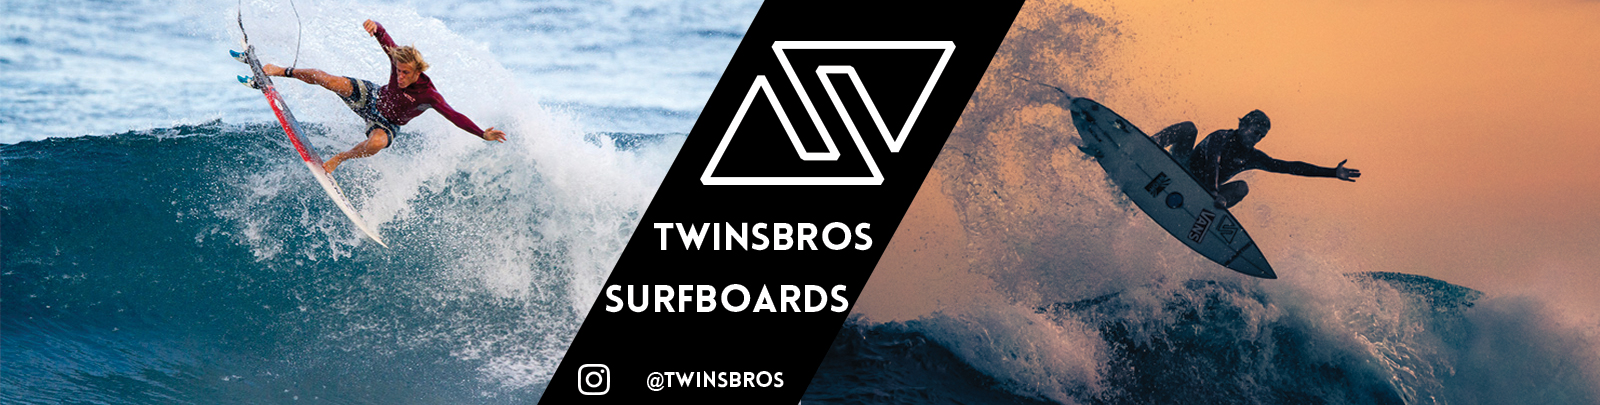 Twinsbros Surfboards 2018